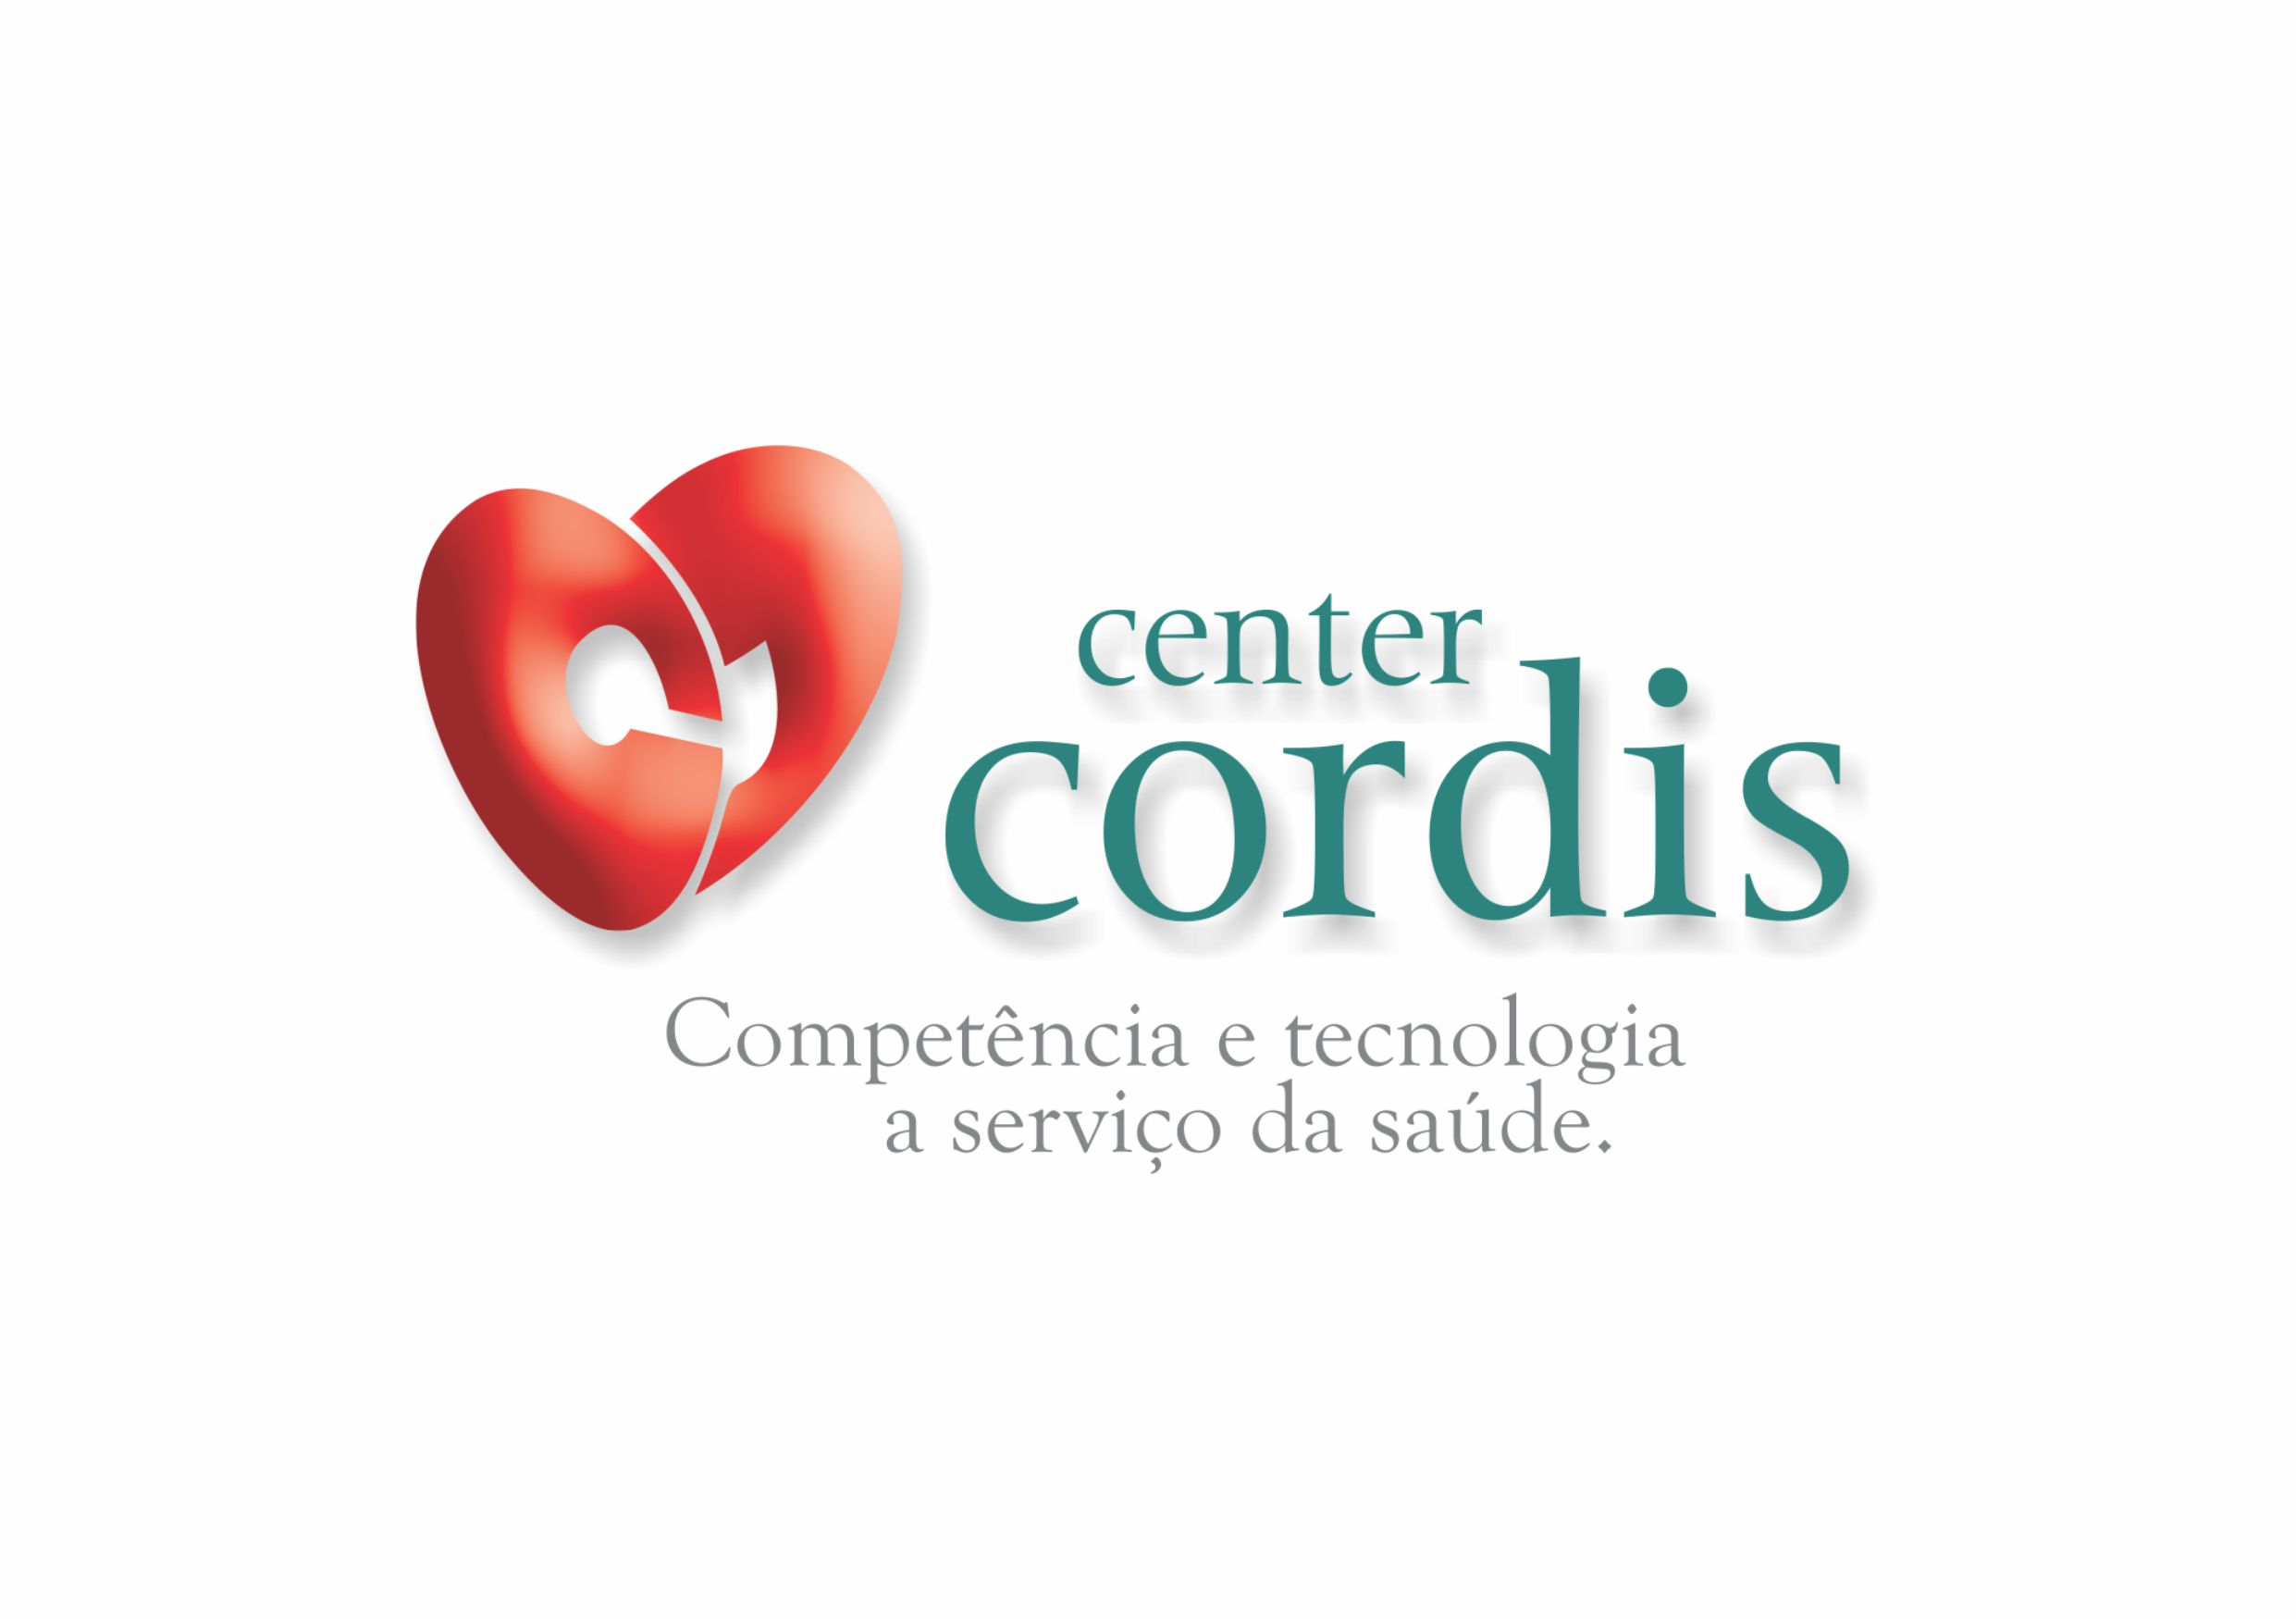 Center Cordis